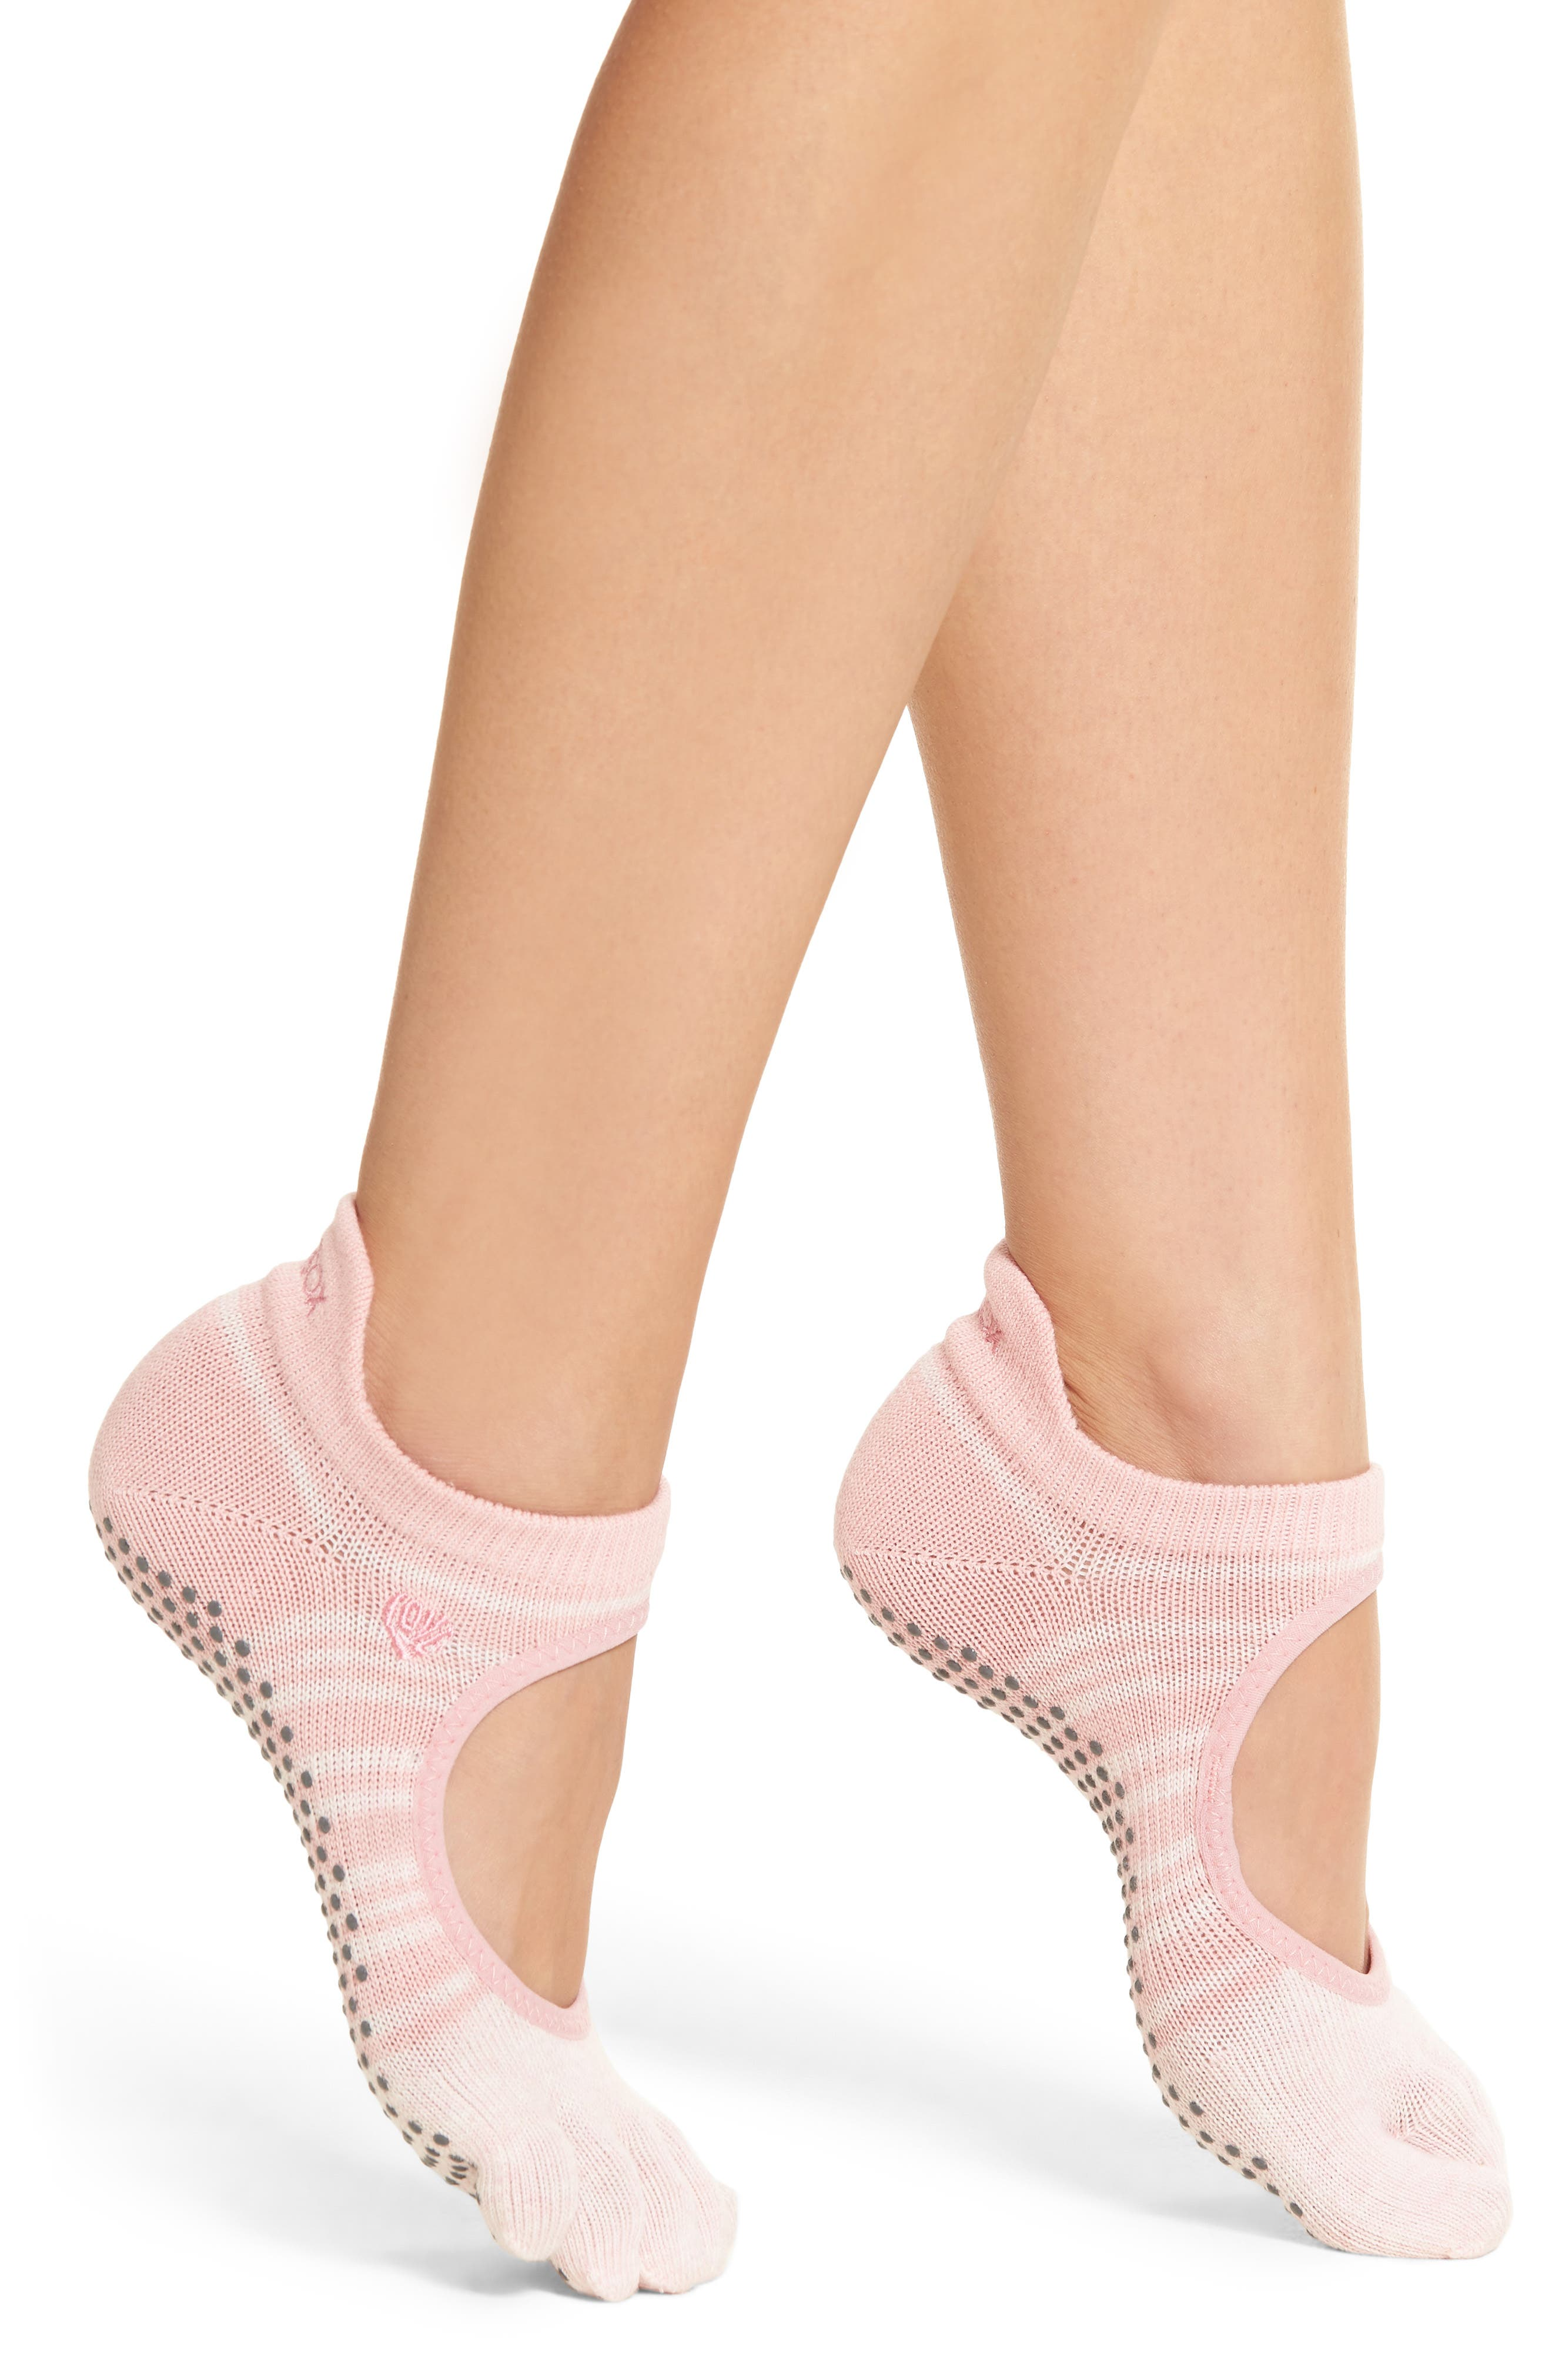 Main Image - ToeSox Bellarina Full Toe Gripper Socks